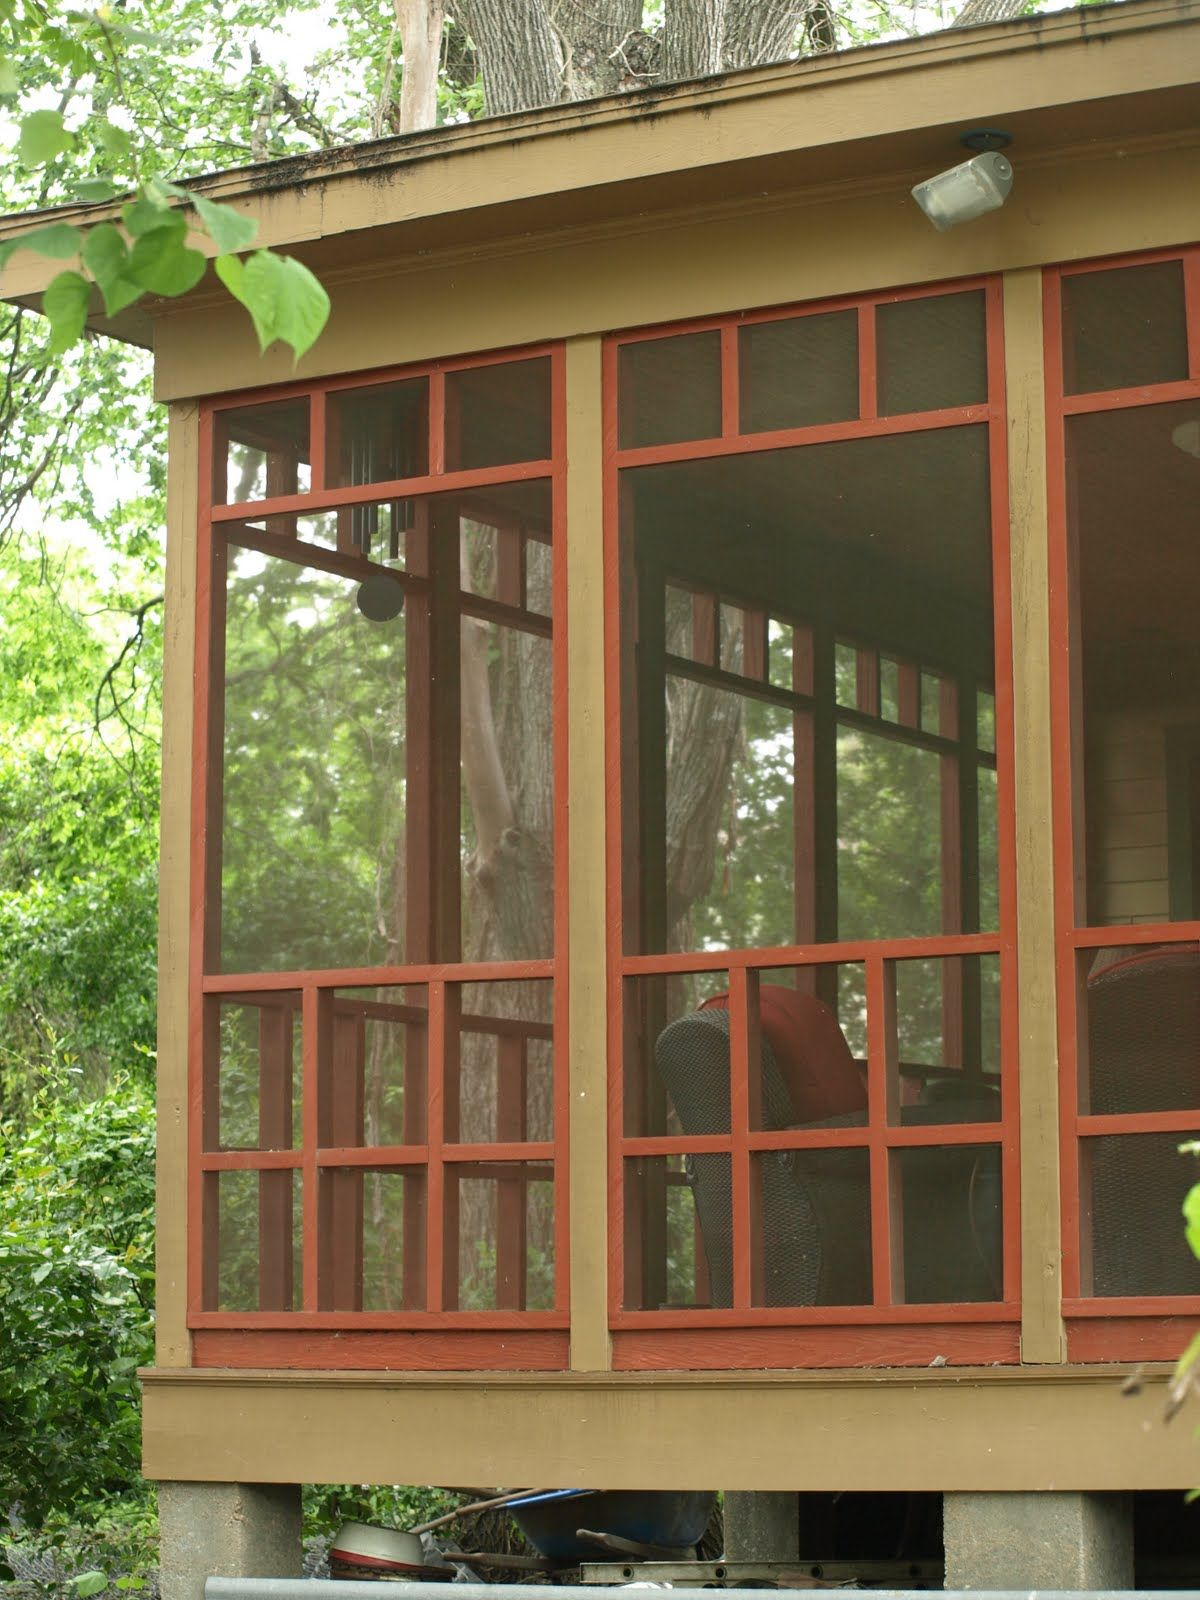 Screen Porch Ideas Designs enclosed porch with exposed rafters and stone fireplace hearth Old Screened In Porch 1910 The Screened Porch Is New But Fits Beautifully With